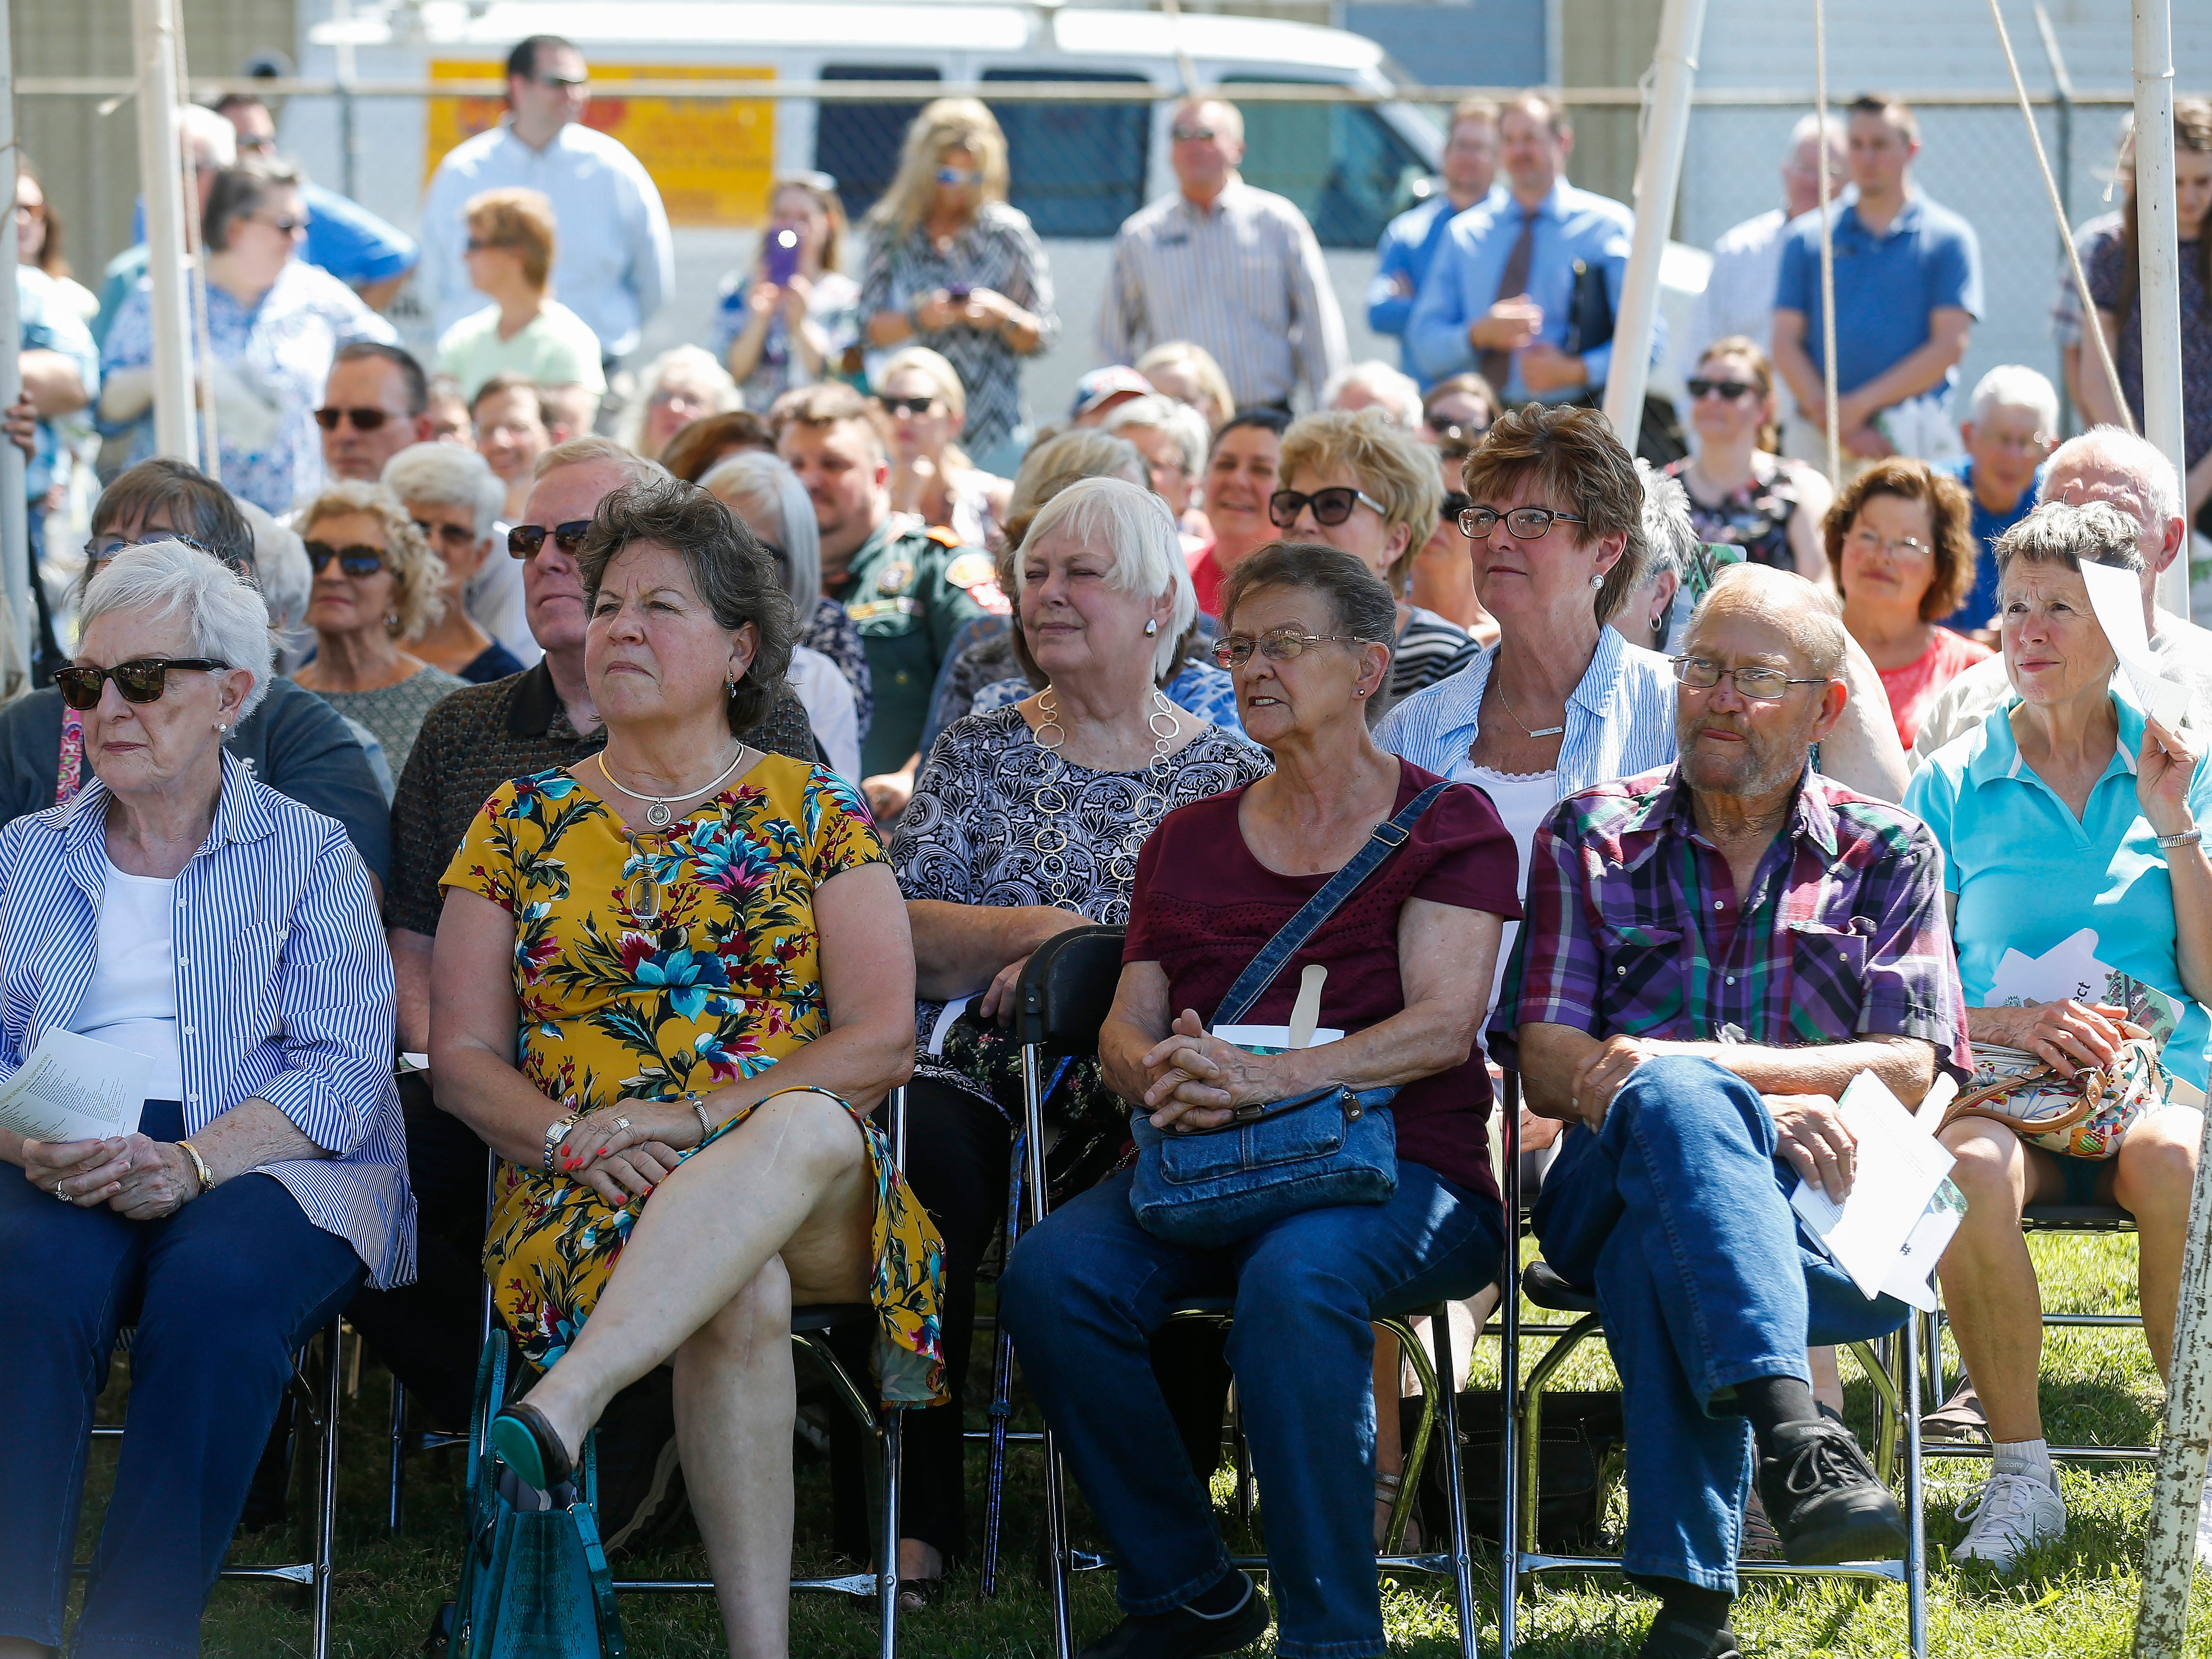 Scenes from the Grand Opening Ceremony at Eden Village on Tuesday, Aug. 28, 2018.